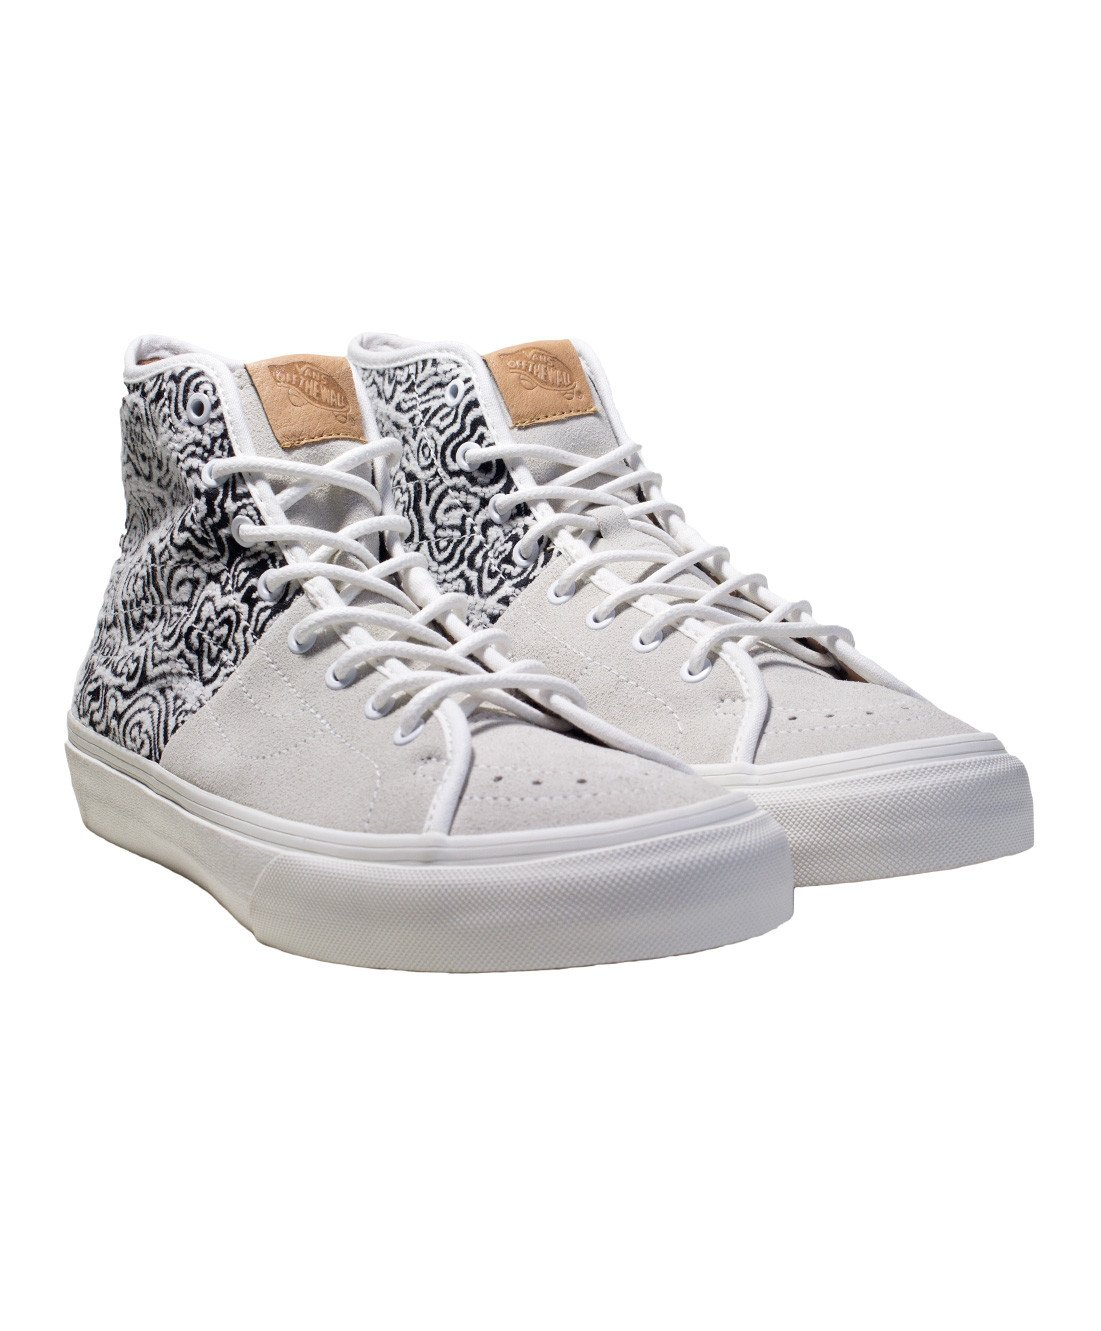 c743621b29 Galleon - Vans Sk8 Hi Decon SPT CA Italian Weave High Tops Skate Shoes Size  10